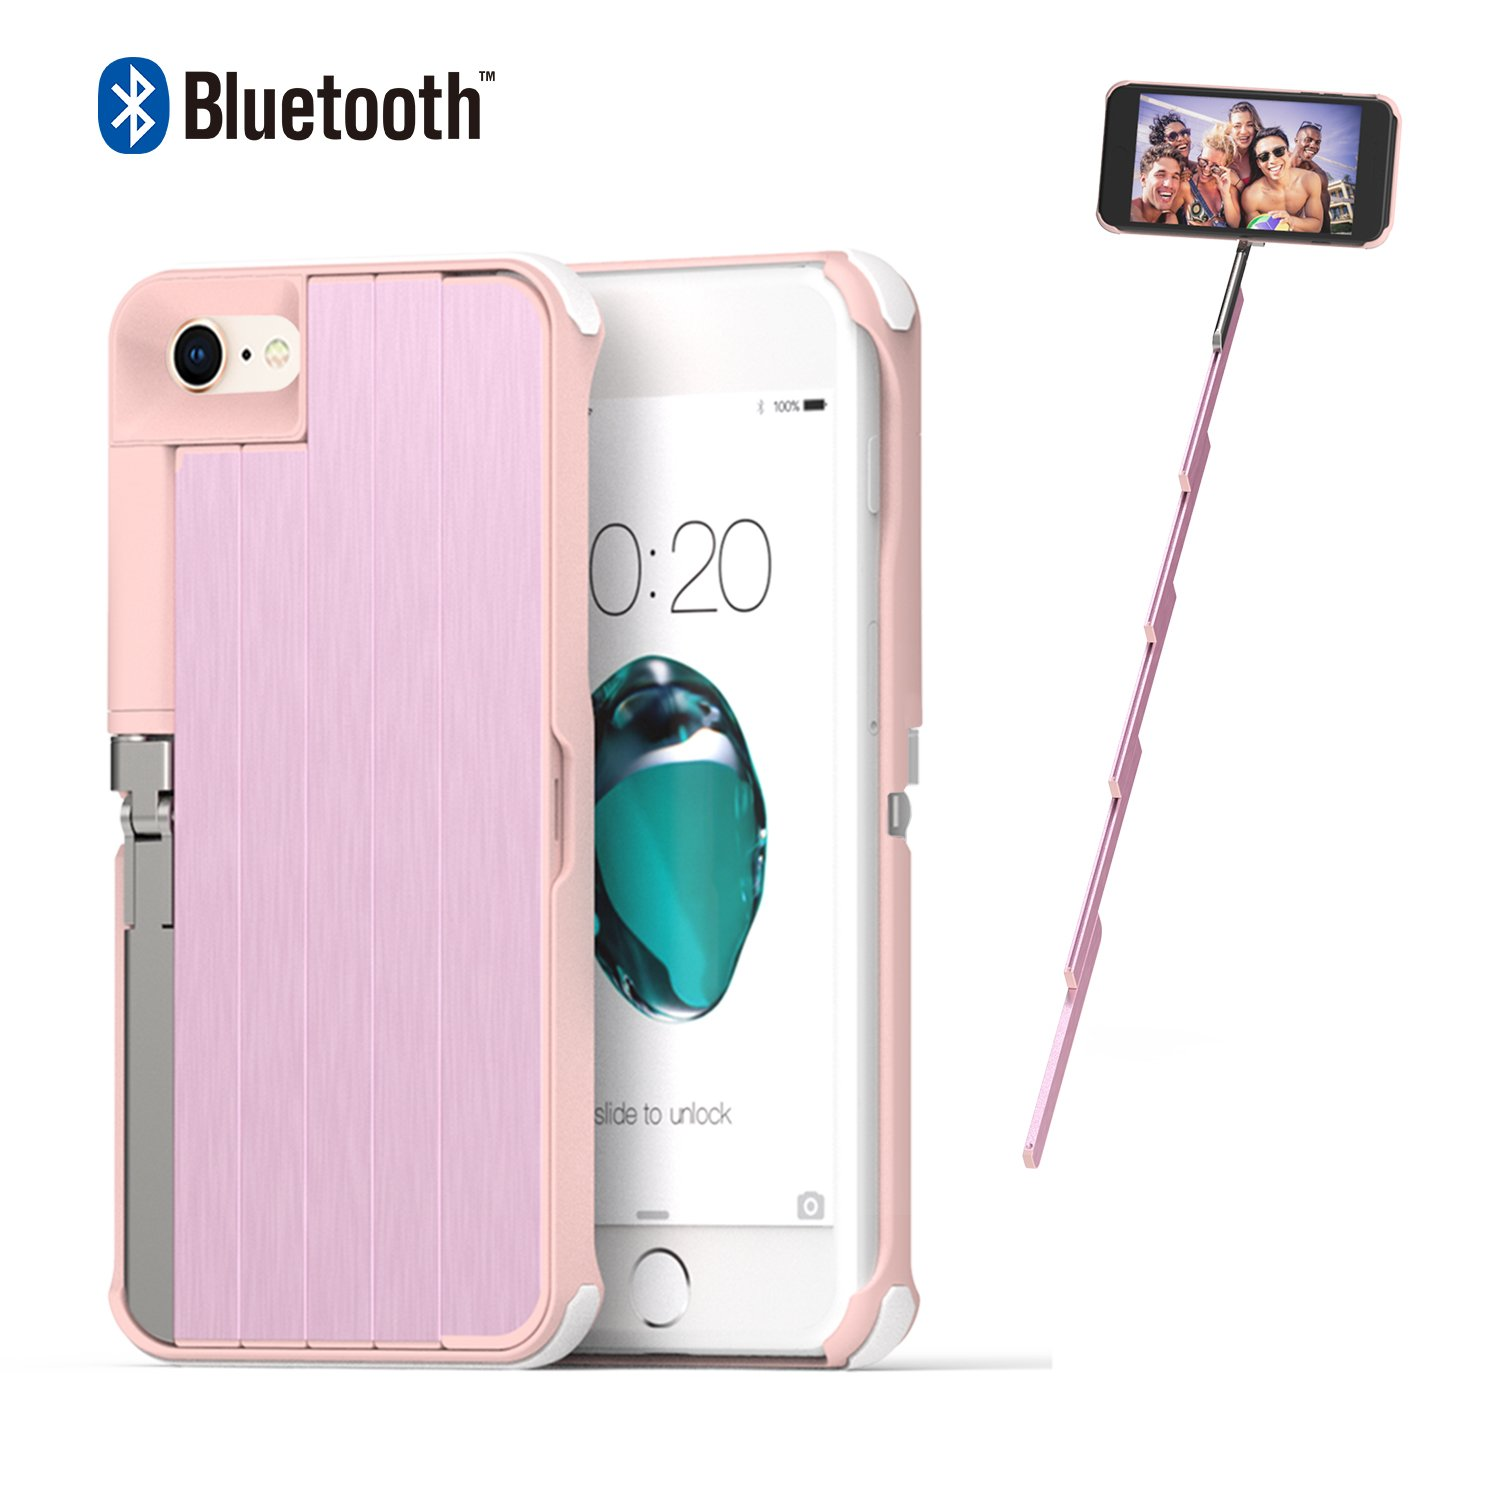 Selfie Stick Case for iPhone 7/8 ETROBOT 3 in 1 iPhone 7 Case White iPhone 8 Case with Rechargeable Wireless Bluetooth Selfie Stick Extendable Aluminium Kickstand Hard Case Protection for Girls